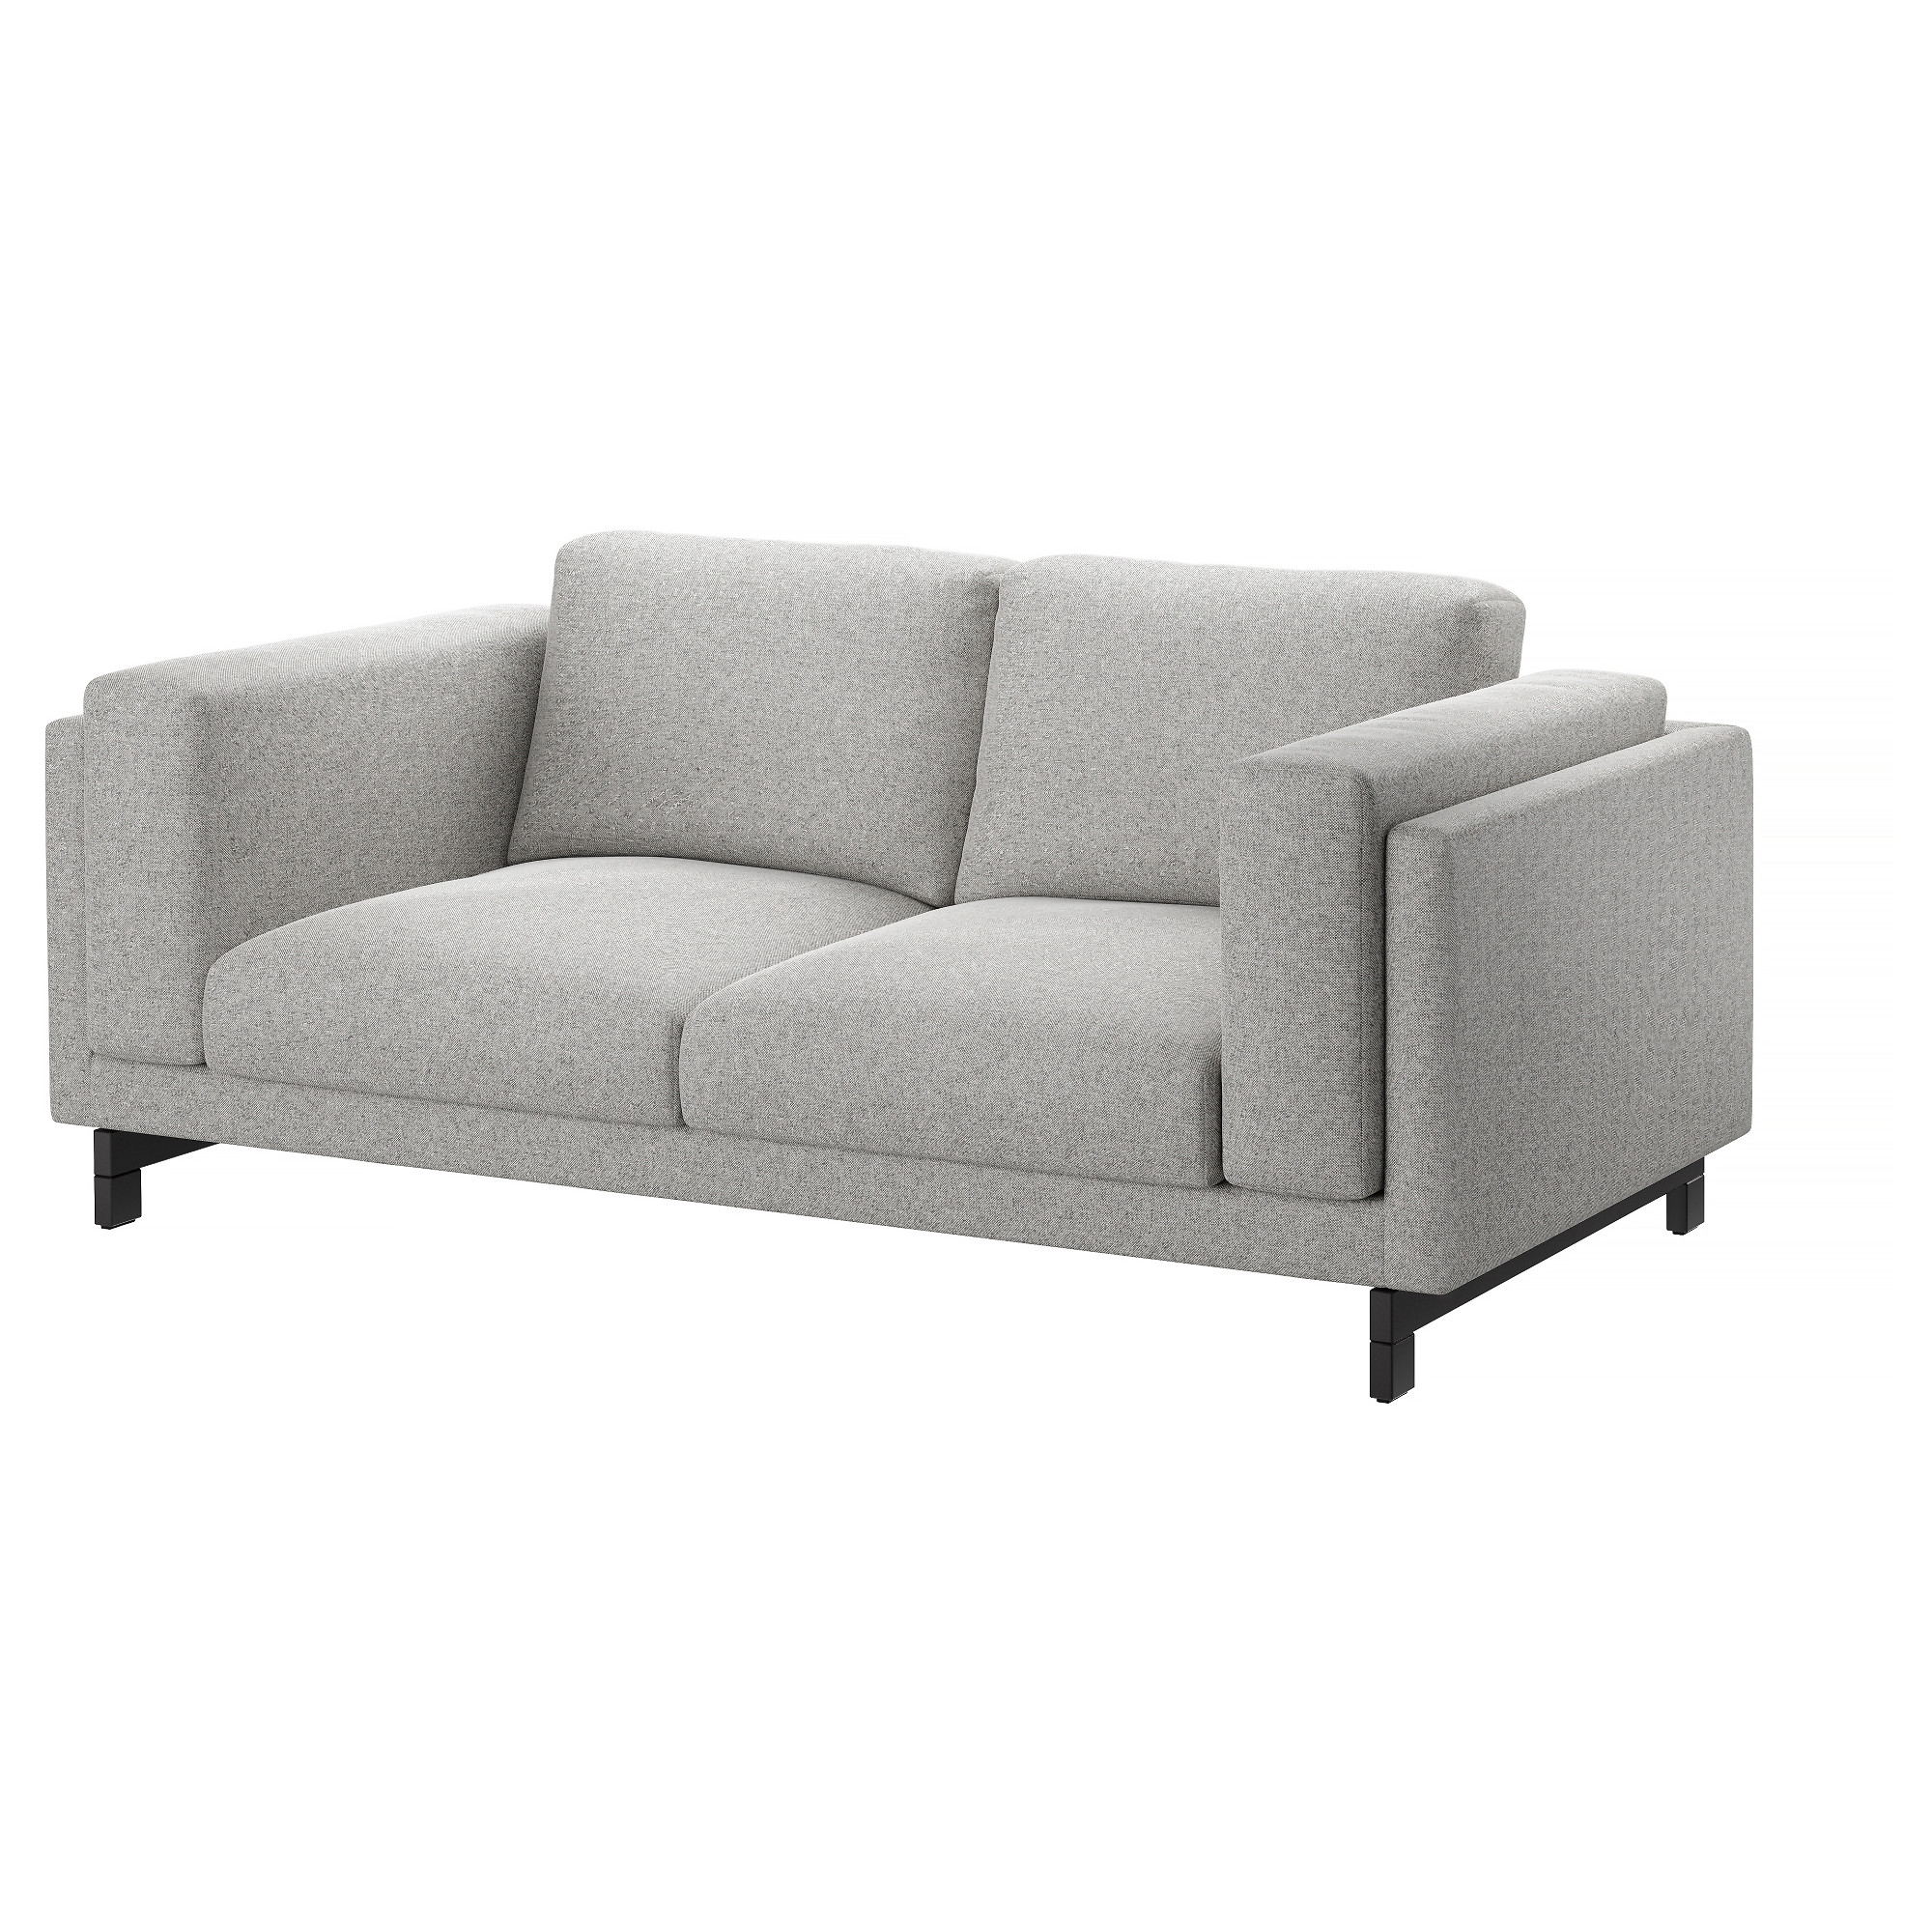 Nockeby 2er Sofa Tallmyra Weiss Schwarz Weiss Schwarz Jetzt Bestellen Unter Https Moebel Lad Three Seat Sofa Corner Sofa Bed With Storage Ikea Nockeby Sofa